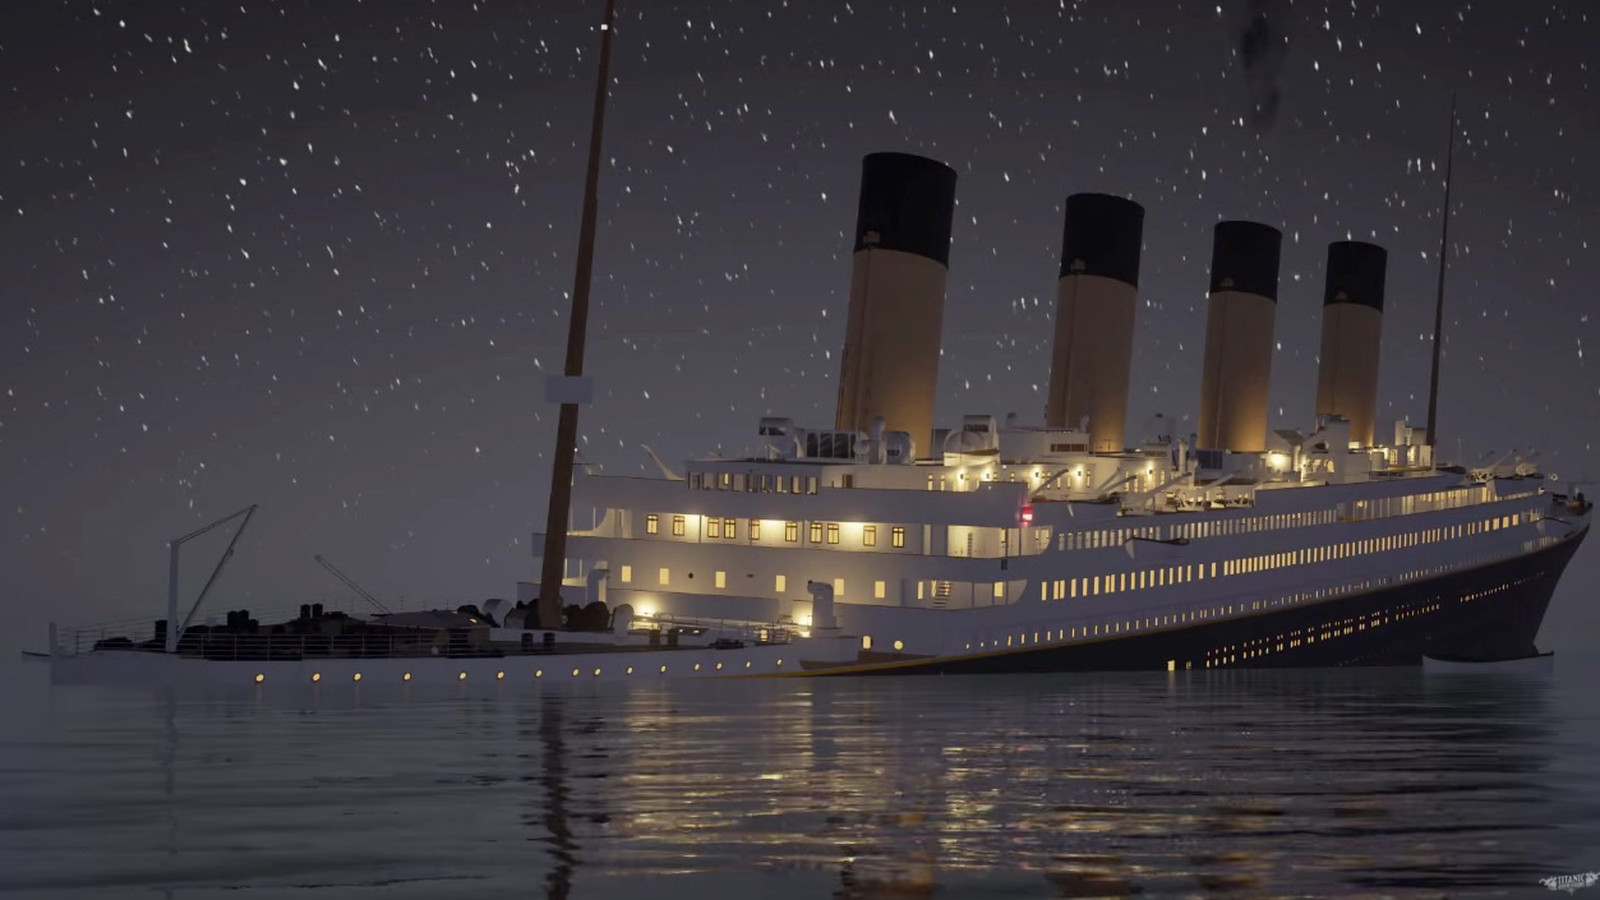 A Real Time Simulation Of The Titanic Sinking Is Slow